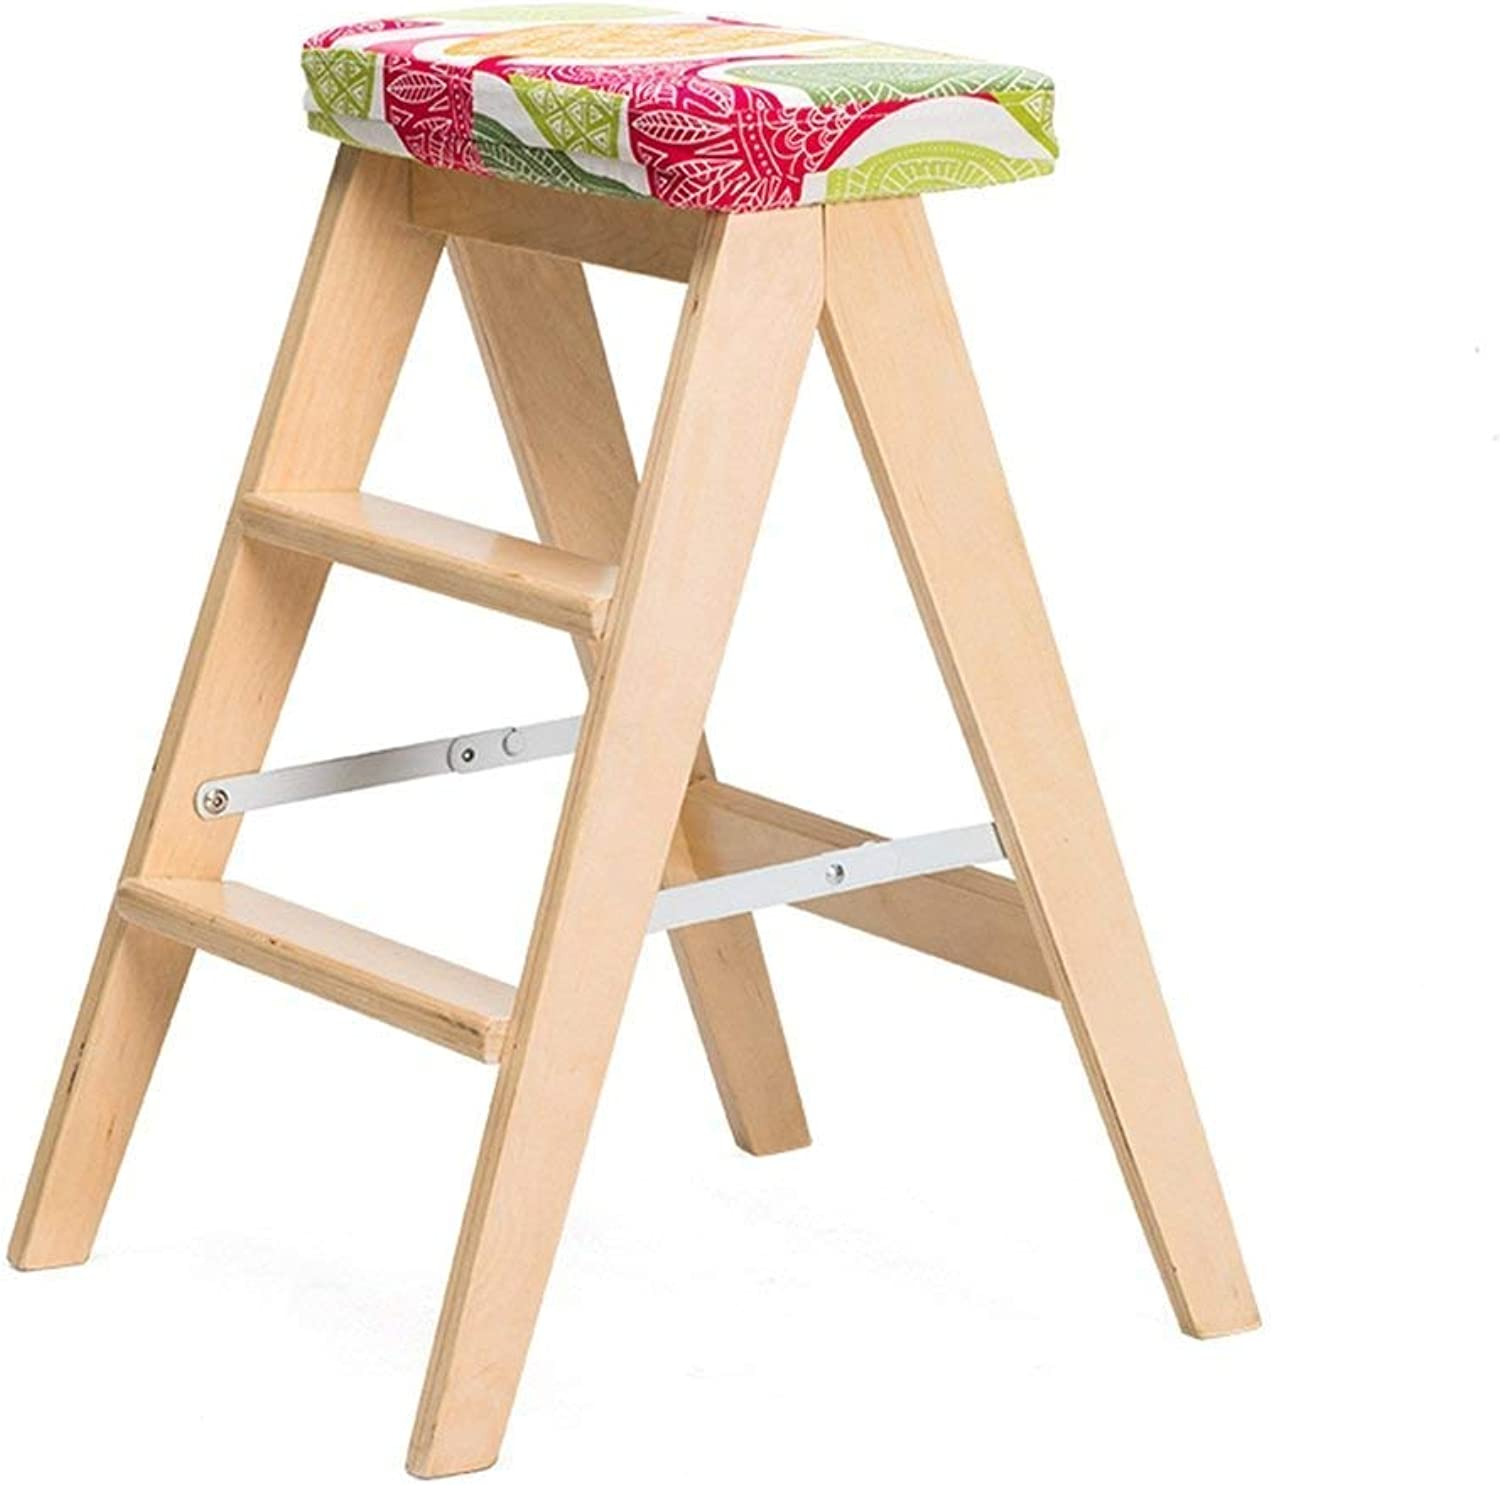 BRNEBN Chair-Folding Stool Solid Wood Simple Folding Ladder Stool Kitchen Stool Portable Stool Home Bench Home Convenient (color   1)